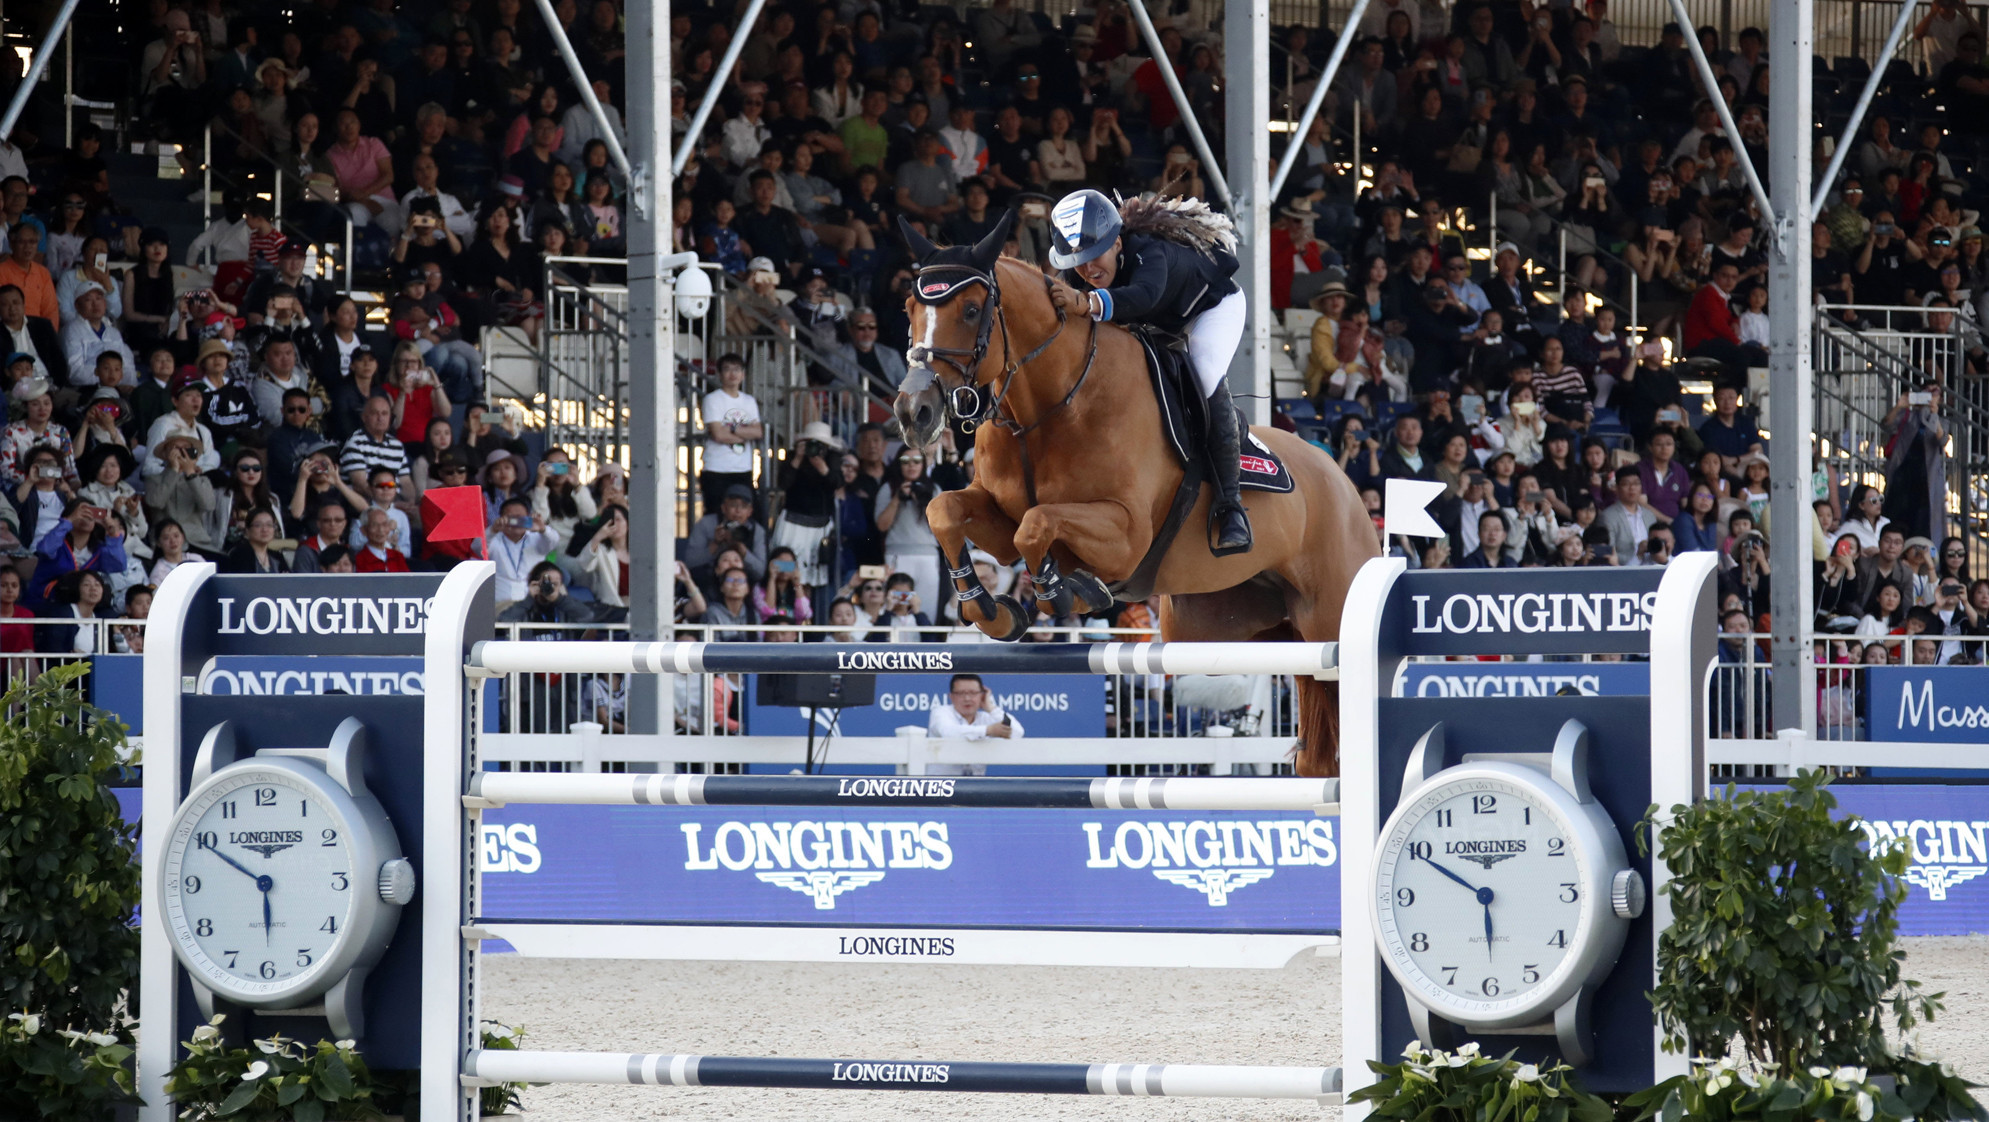 Goldstein becomes first woman to win Shanghai Longines Global Champions Tour Grand Prix